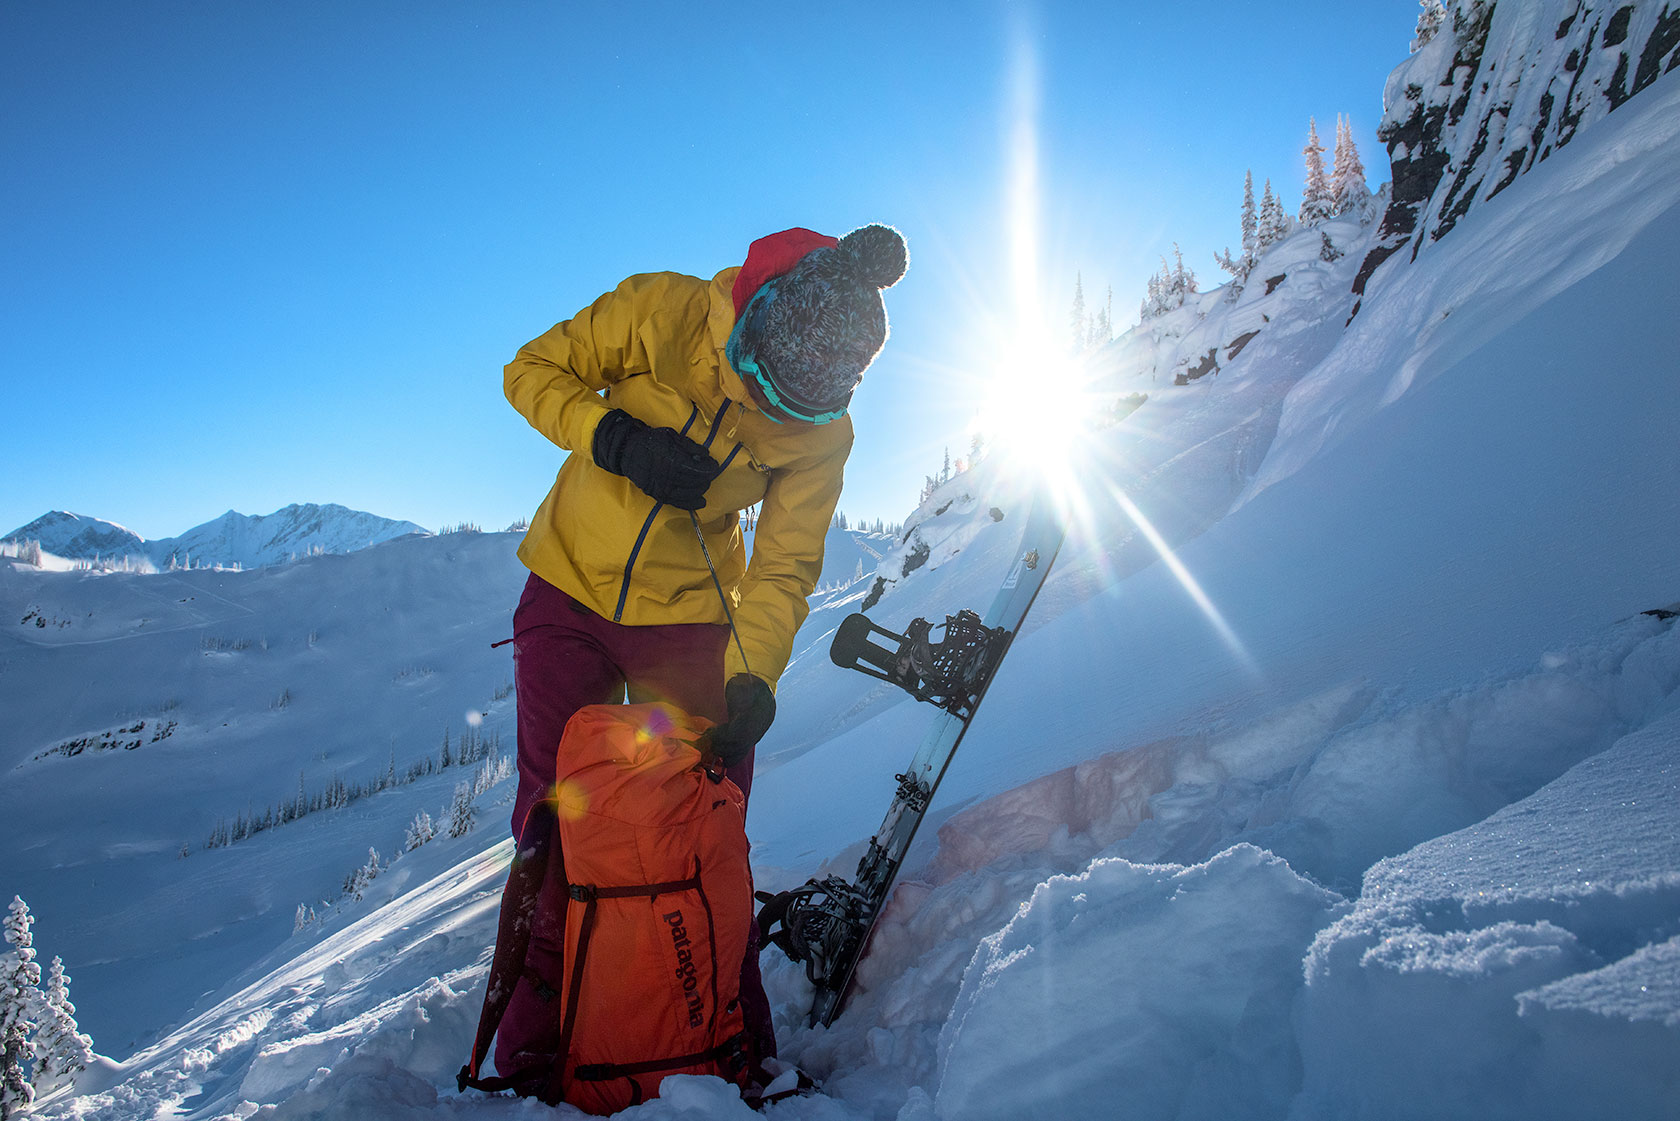 austin-trigg-patagonia-banff-alberta-winter-packing-backpack-canada-lifestyle-adventure-mountains-rogers-pass.jpg